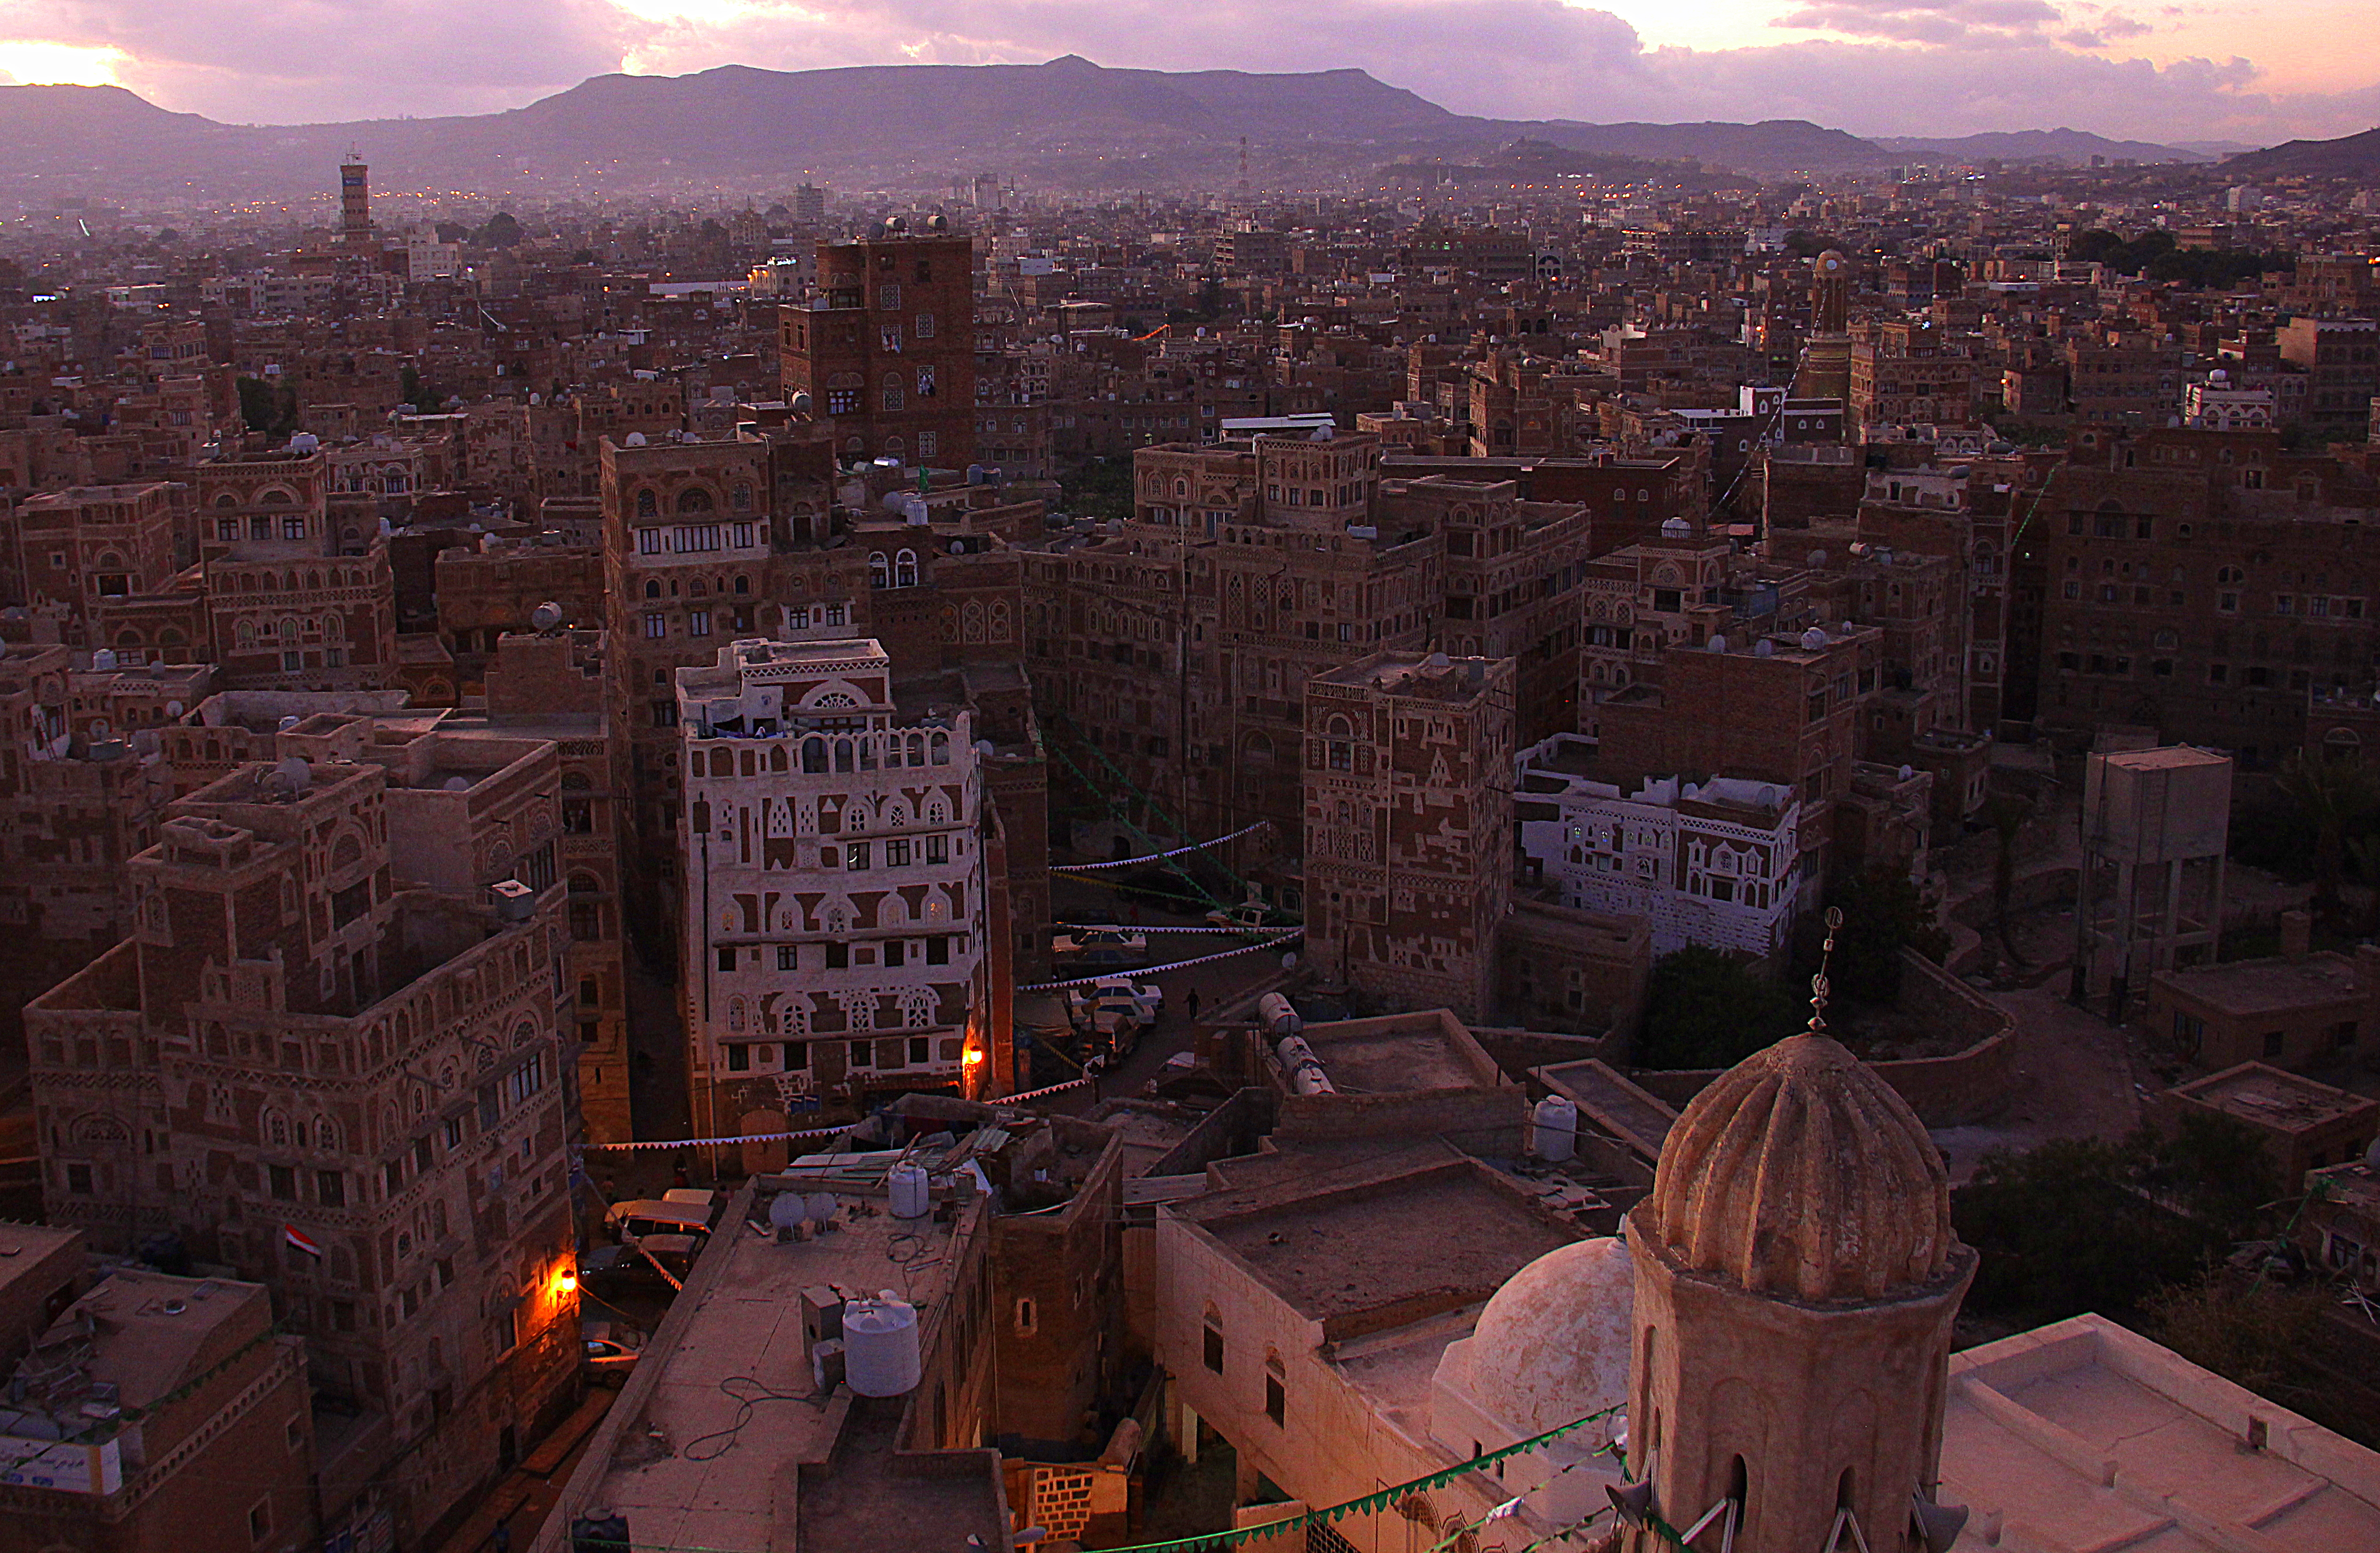 Of Old Sanaa